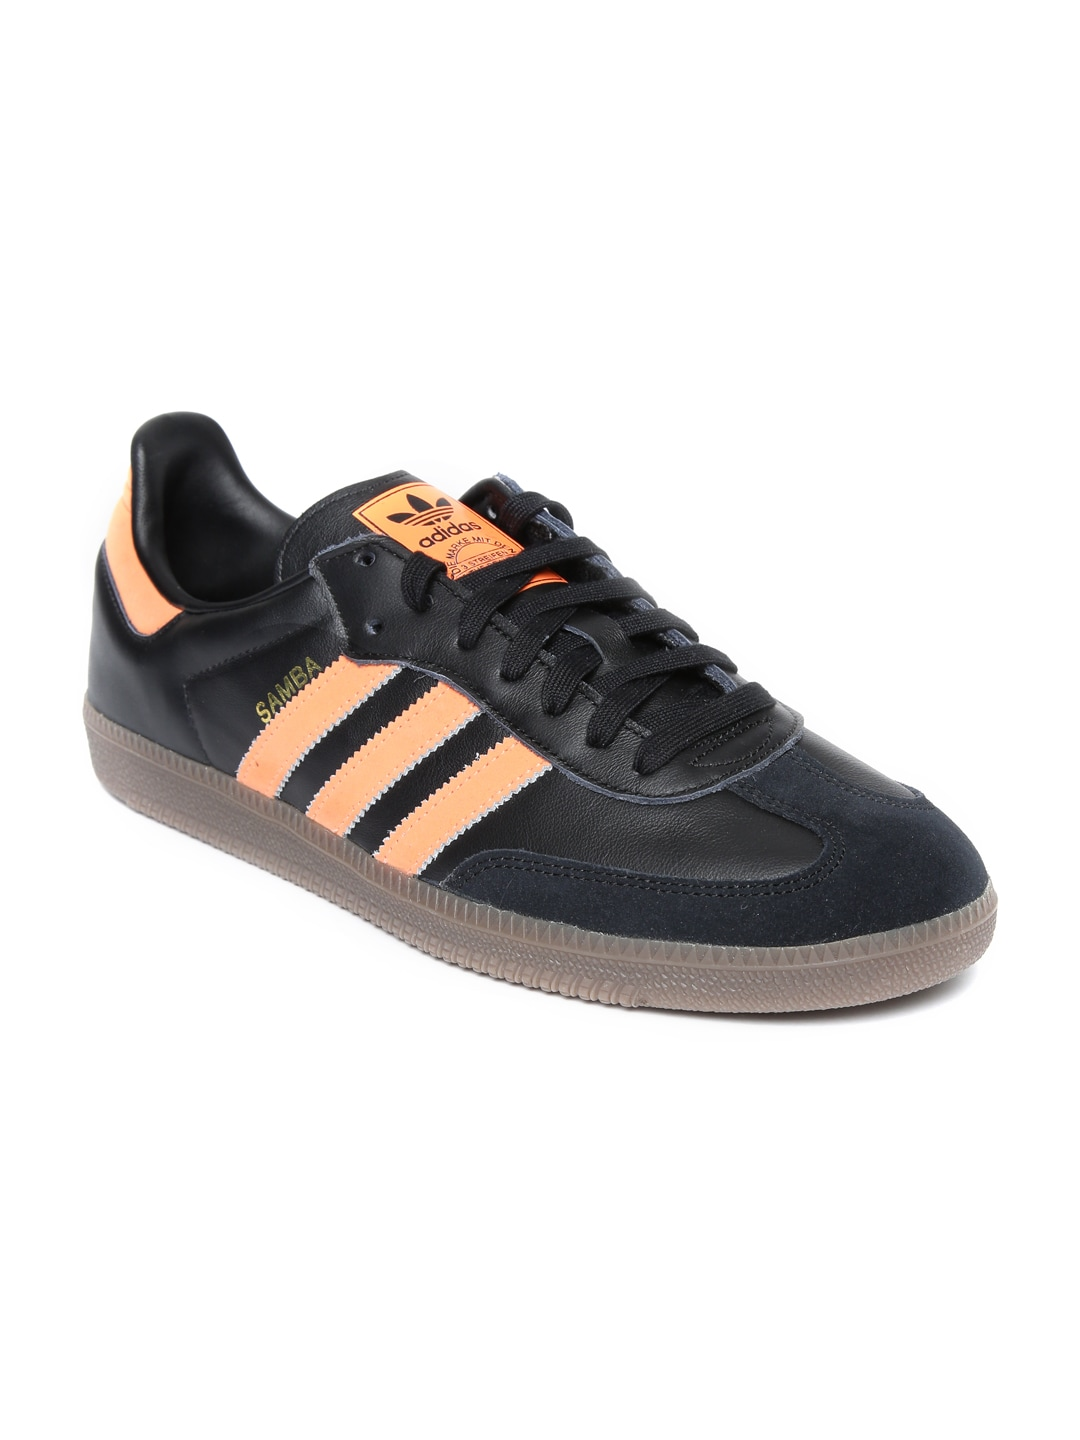 Adidas Shoes - Buy Adidas Shoes for Men   Women Online - Myntra 14c698439